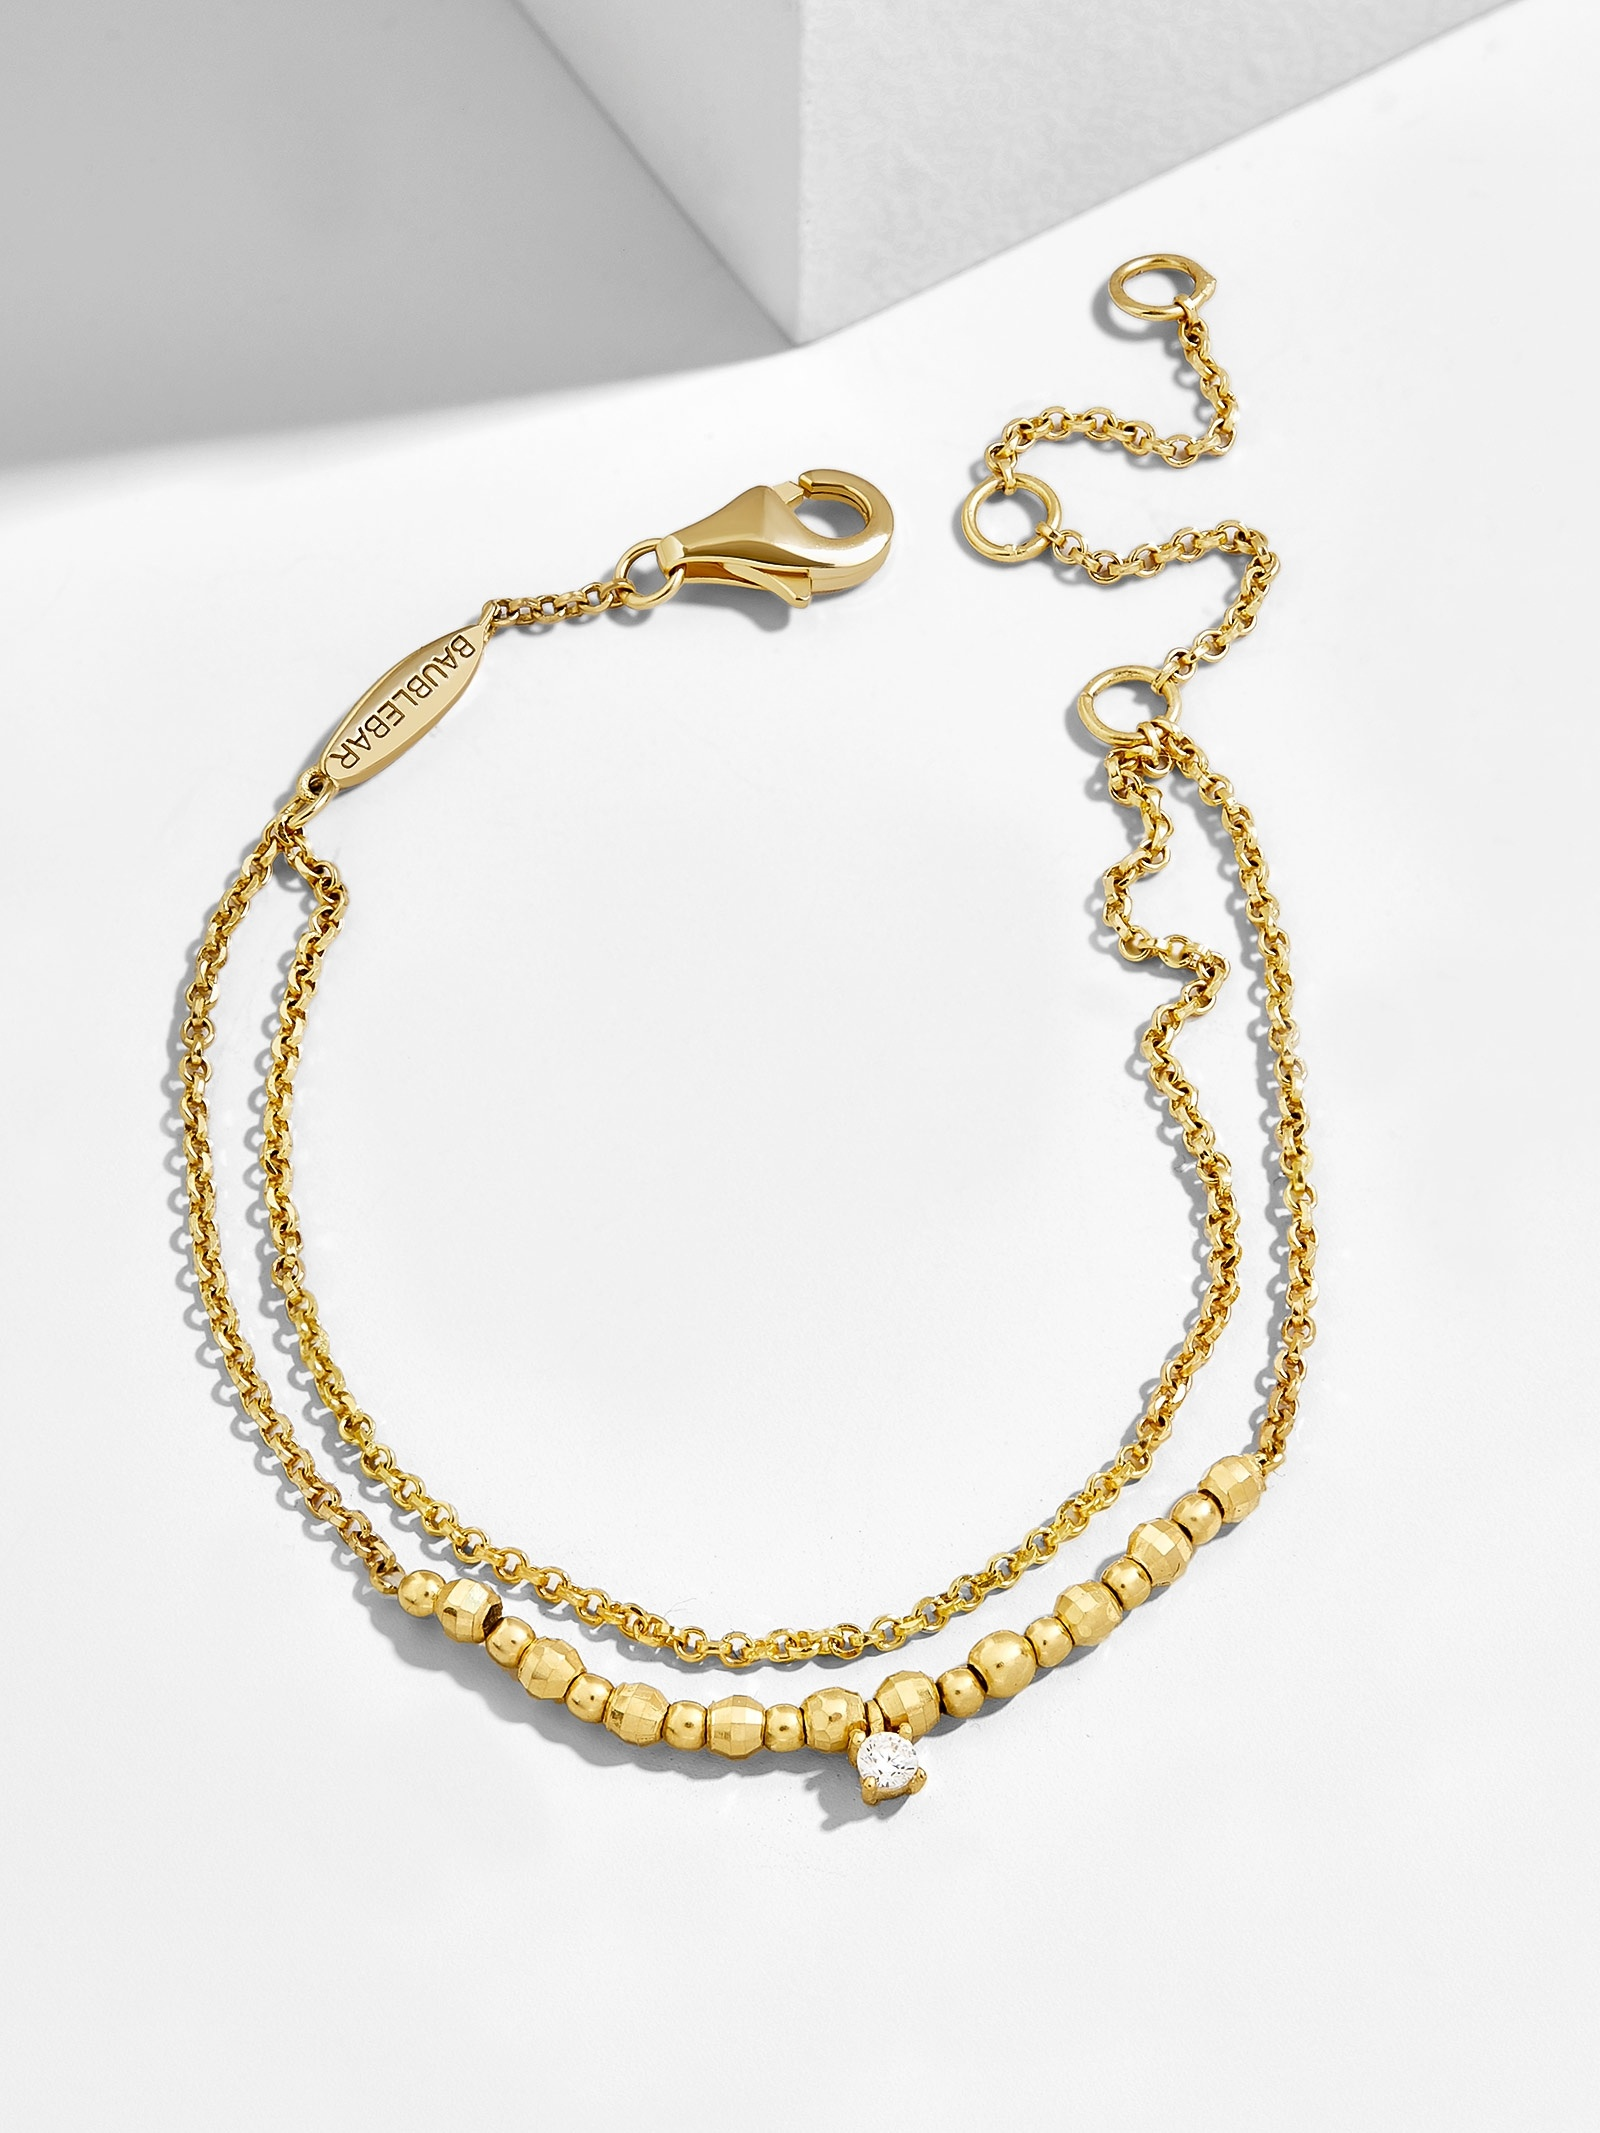 Pepita 18 K Gold Plated Bracelet by Baublebar